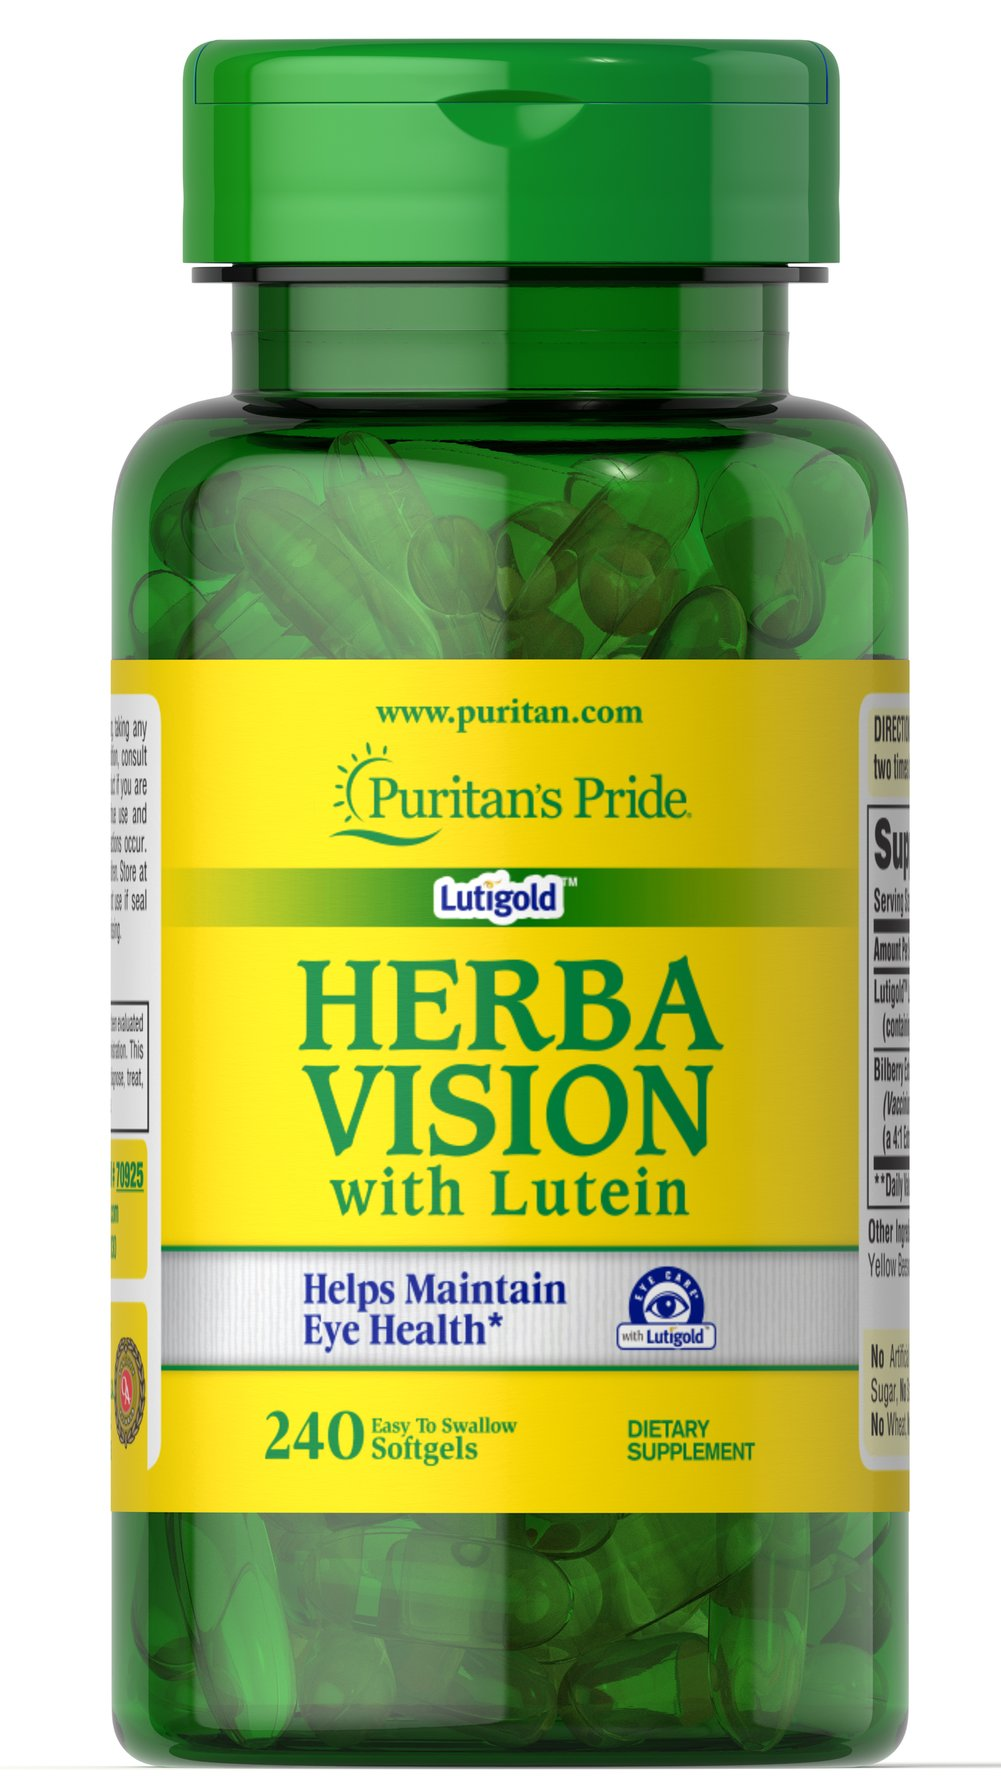 Herbavision with Lutein and Bilberry <p><b>Nutritional support for your eyes**</b></p><p>Contributes to clear, healthy vision**</p><p>Formulated with Lutigold™ Lutein, derived from pure, natural sources</p> <p>Contains naturally occurring protective antioxidants and active carotenoids, such as Zeaxanthin, for synergistic support**</p>  <p>Comes in convenient, easy-to-swallow softgels</p> 240 Softgels  $43.99